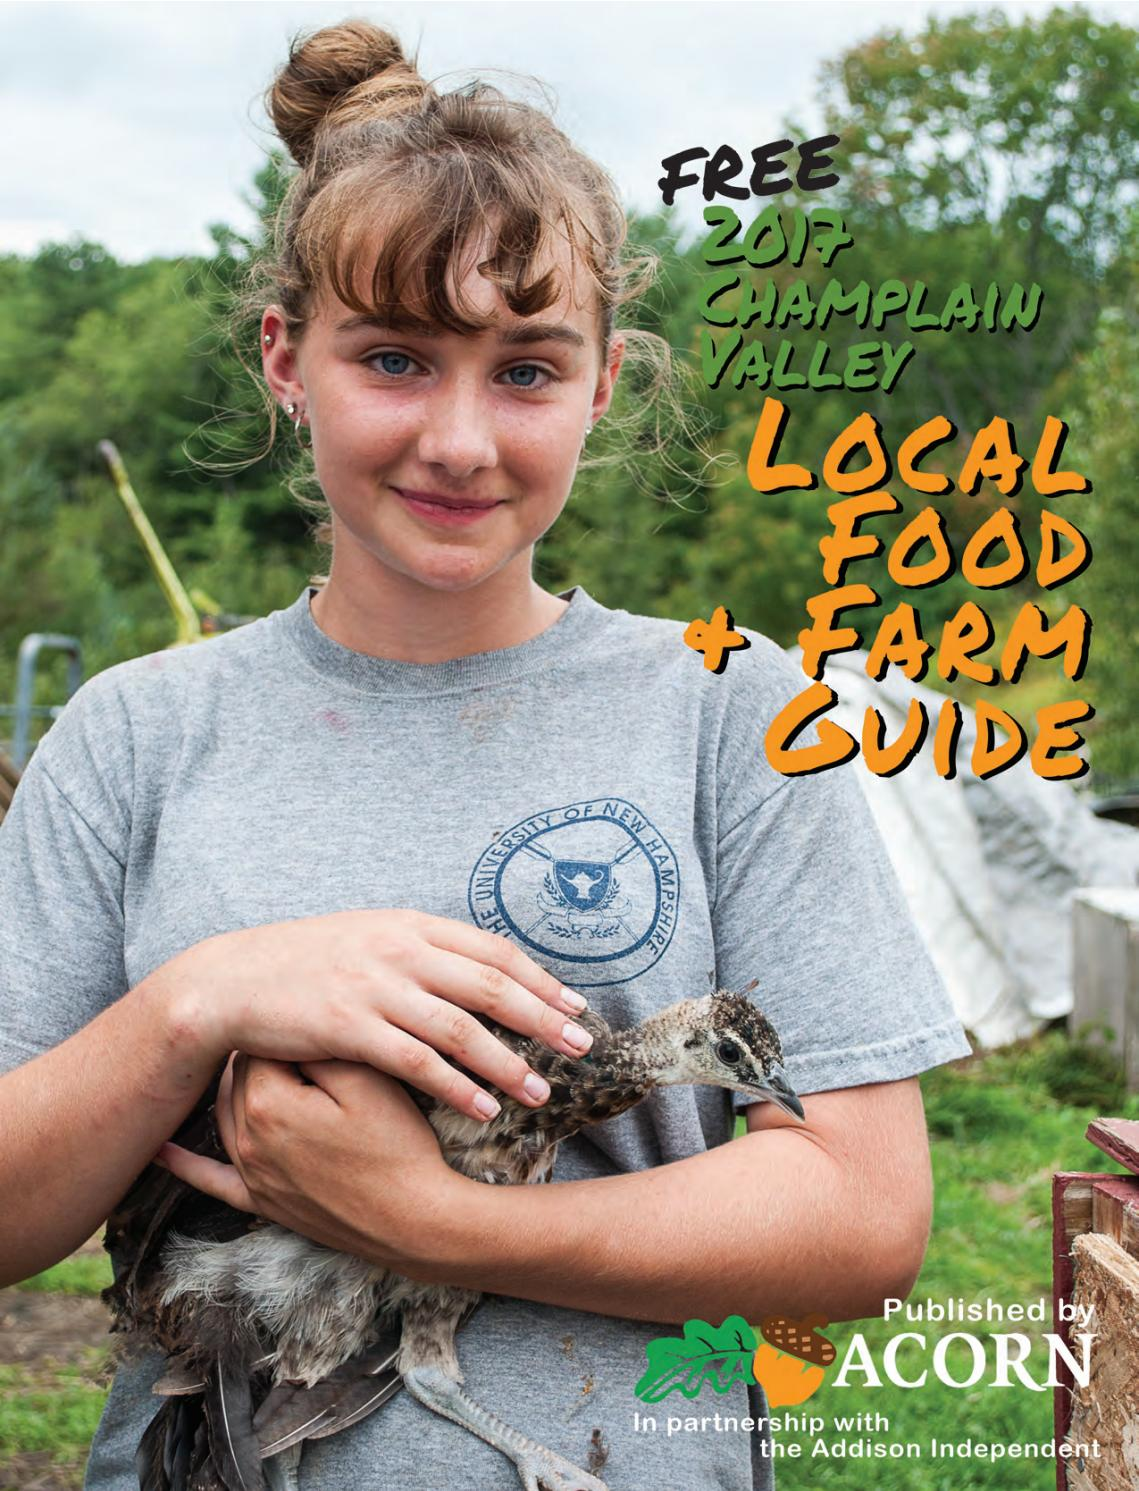 Local food farm guide 2017 by addisonpress issuu for G stone motors middlebury vermont